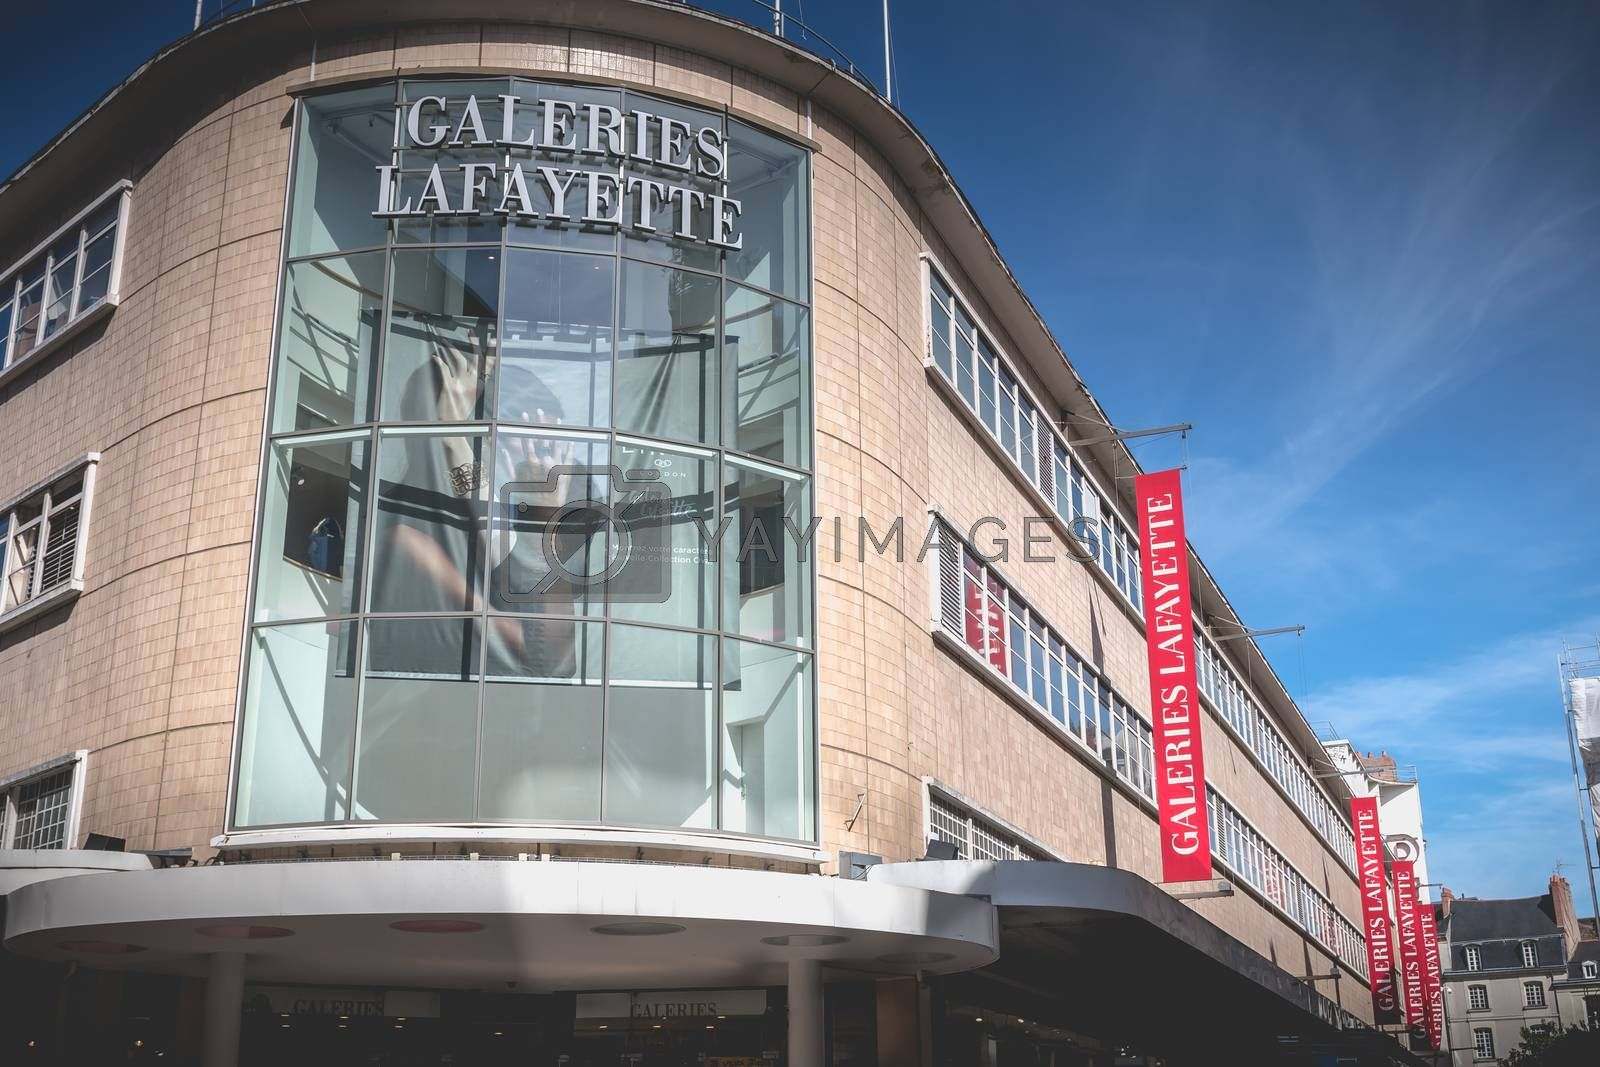 Nantes, France - September 25, 2018: architectural detail of the front of the luxury department store Galeries Lafayette with people walking in the end of the summer